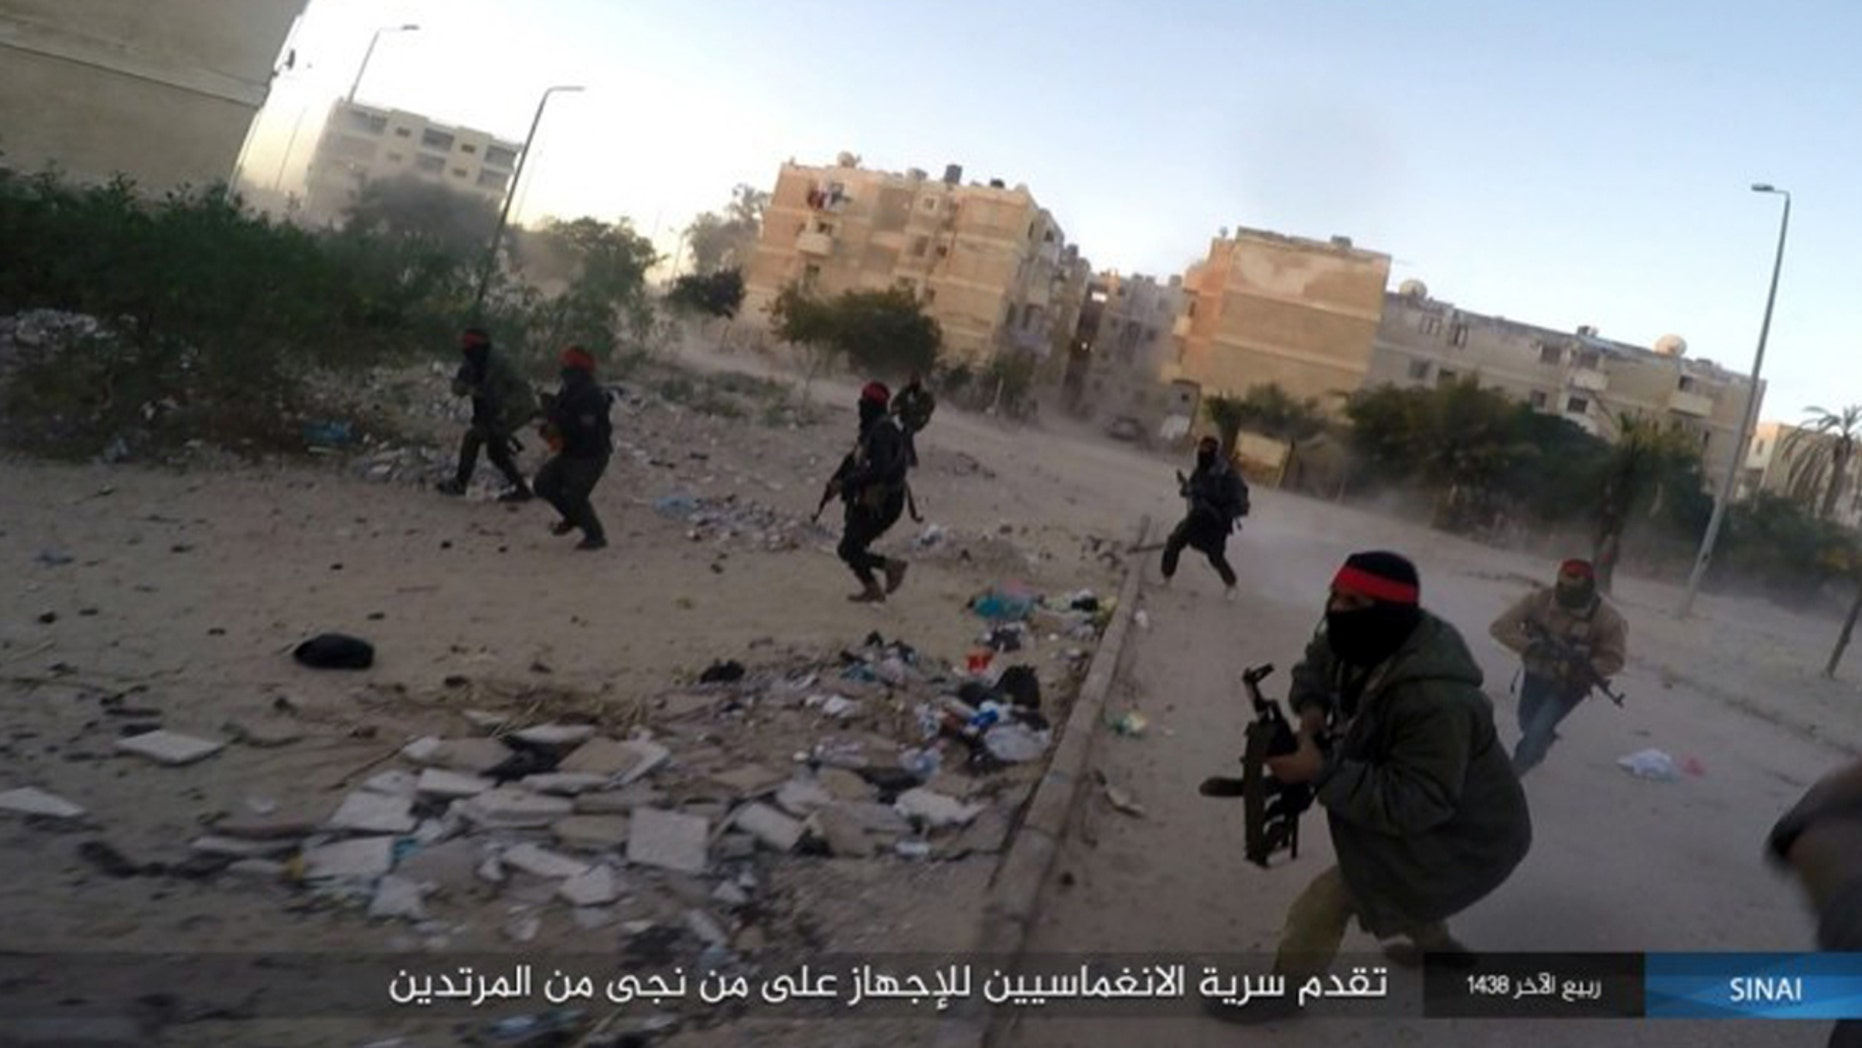 his photo posted on a file sharing website Wednesday, Jan. 11, 2017, by the Islamic State Group in Sinai, a militant organization, shows a deadly attack by militants on an Egyptian police checkpoint, in el-Arish, north Sinai, Egypt.